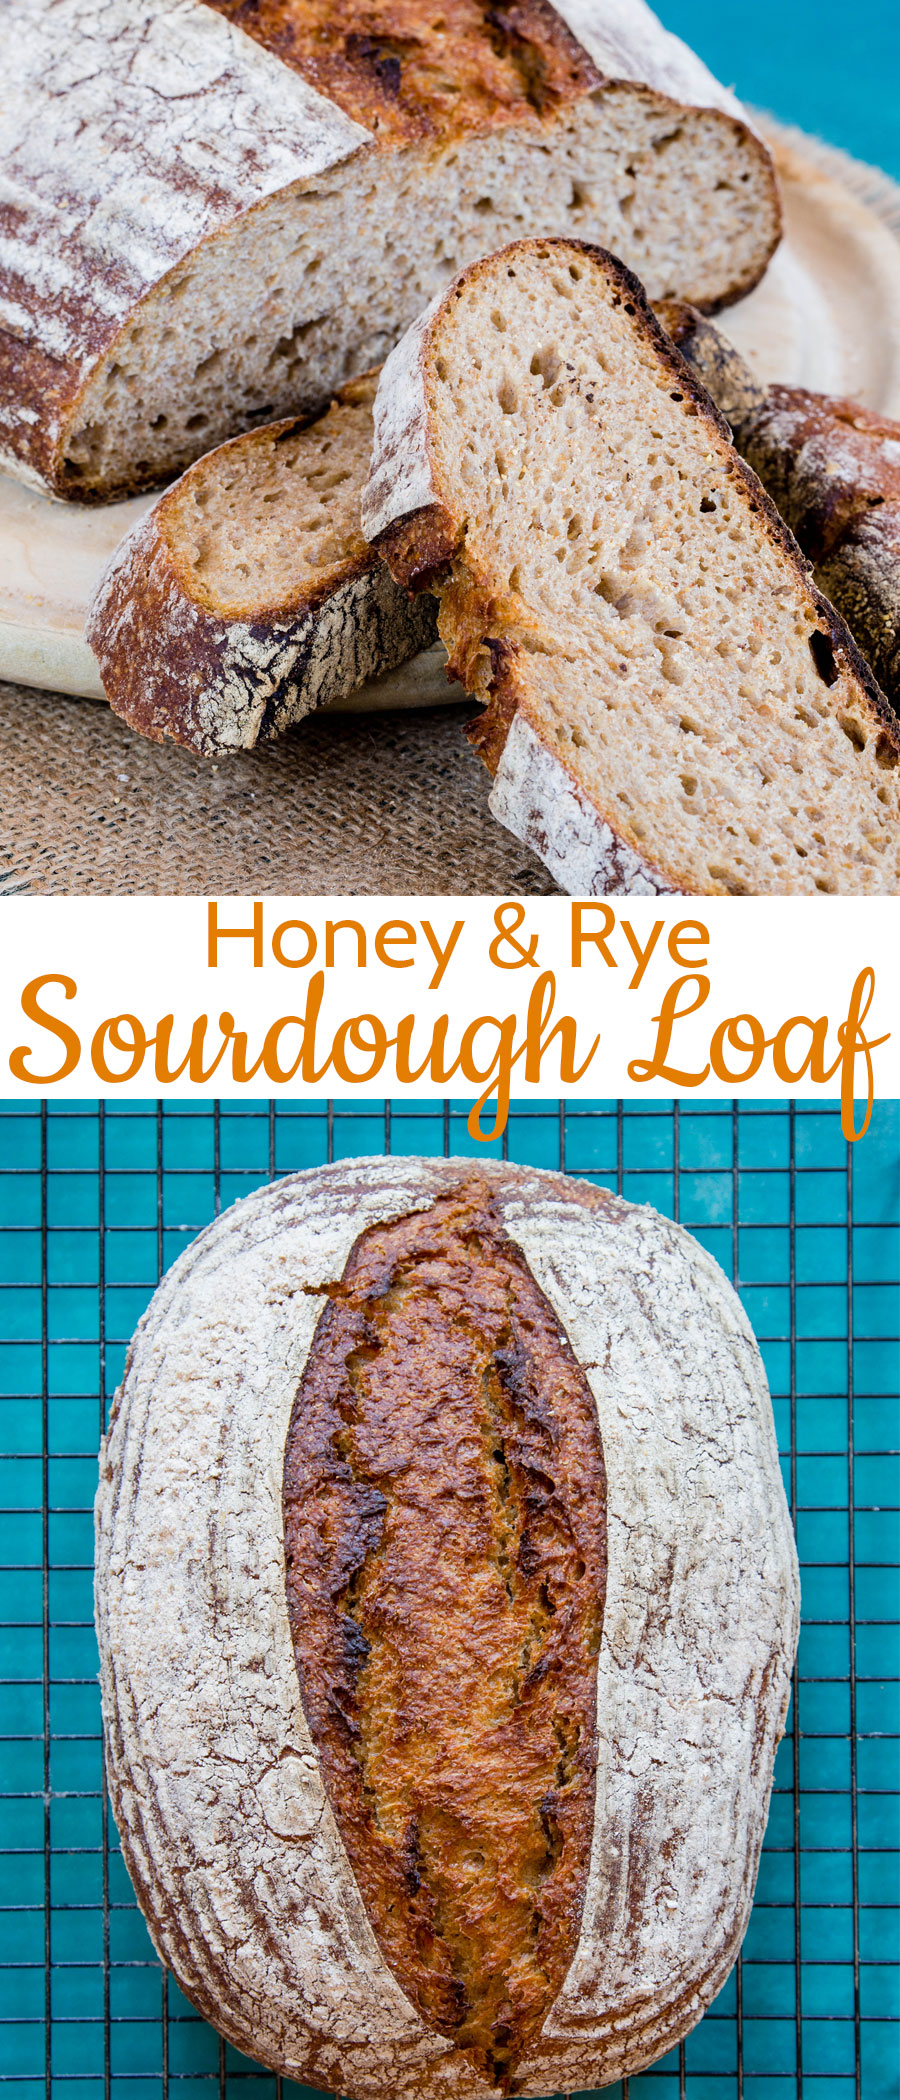 Delicious homemade honey and rye sourdough bread - with a soft crumb and sweet caramalised crust